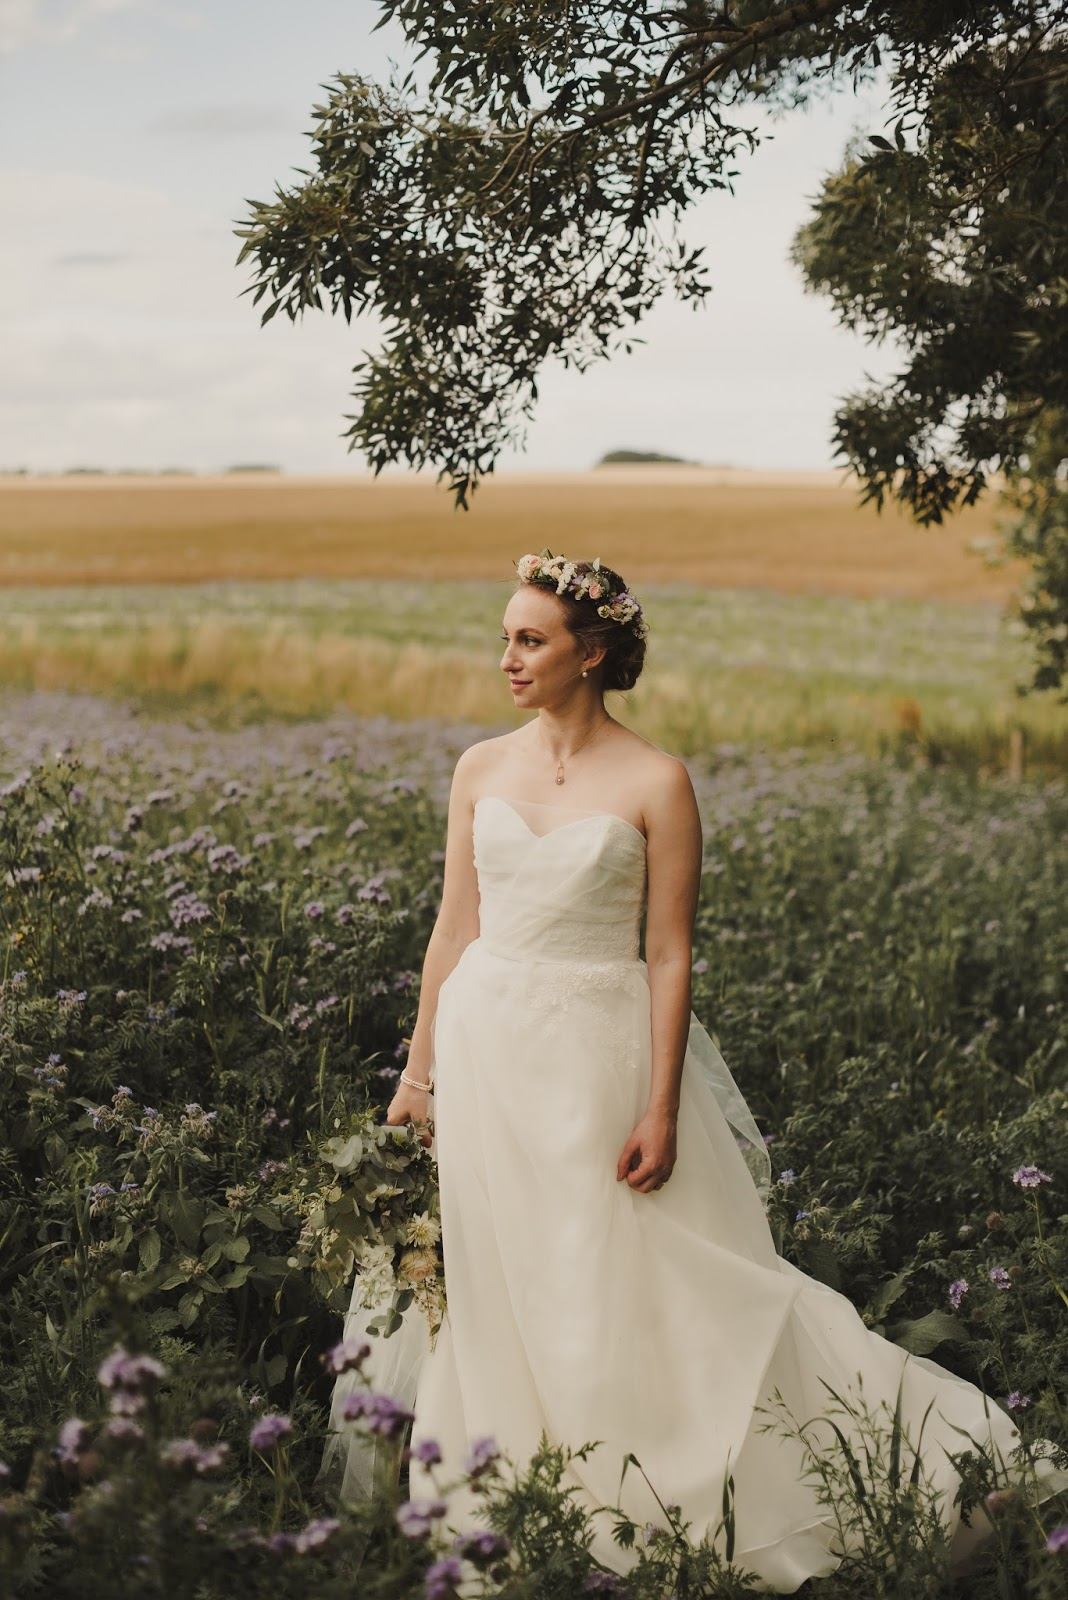 Scottish bridal boho bride makeup inspiration